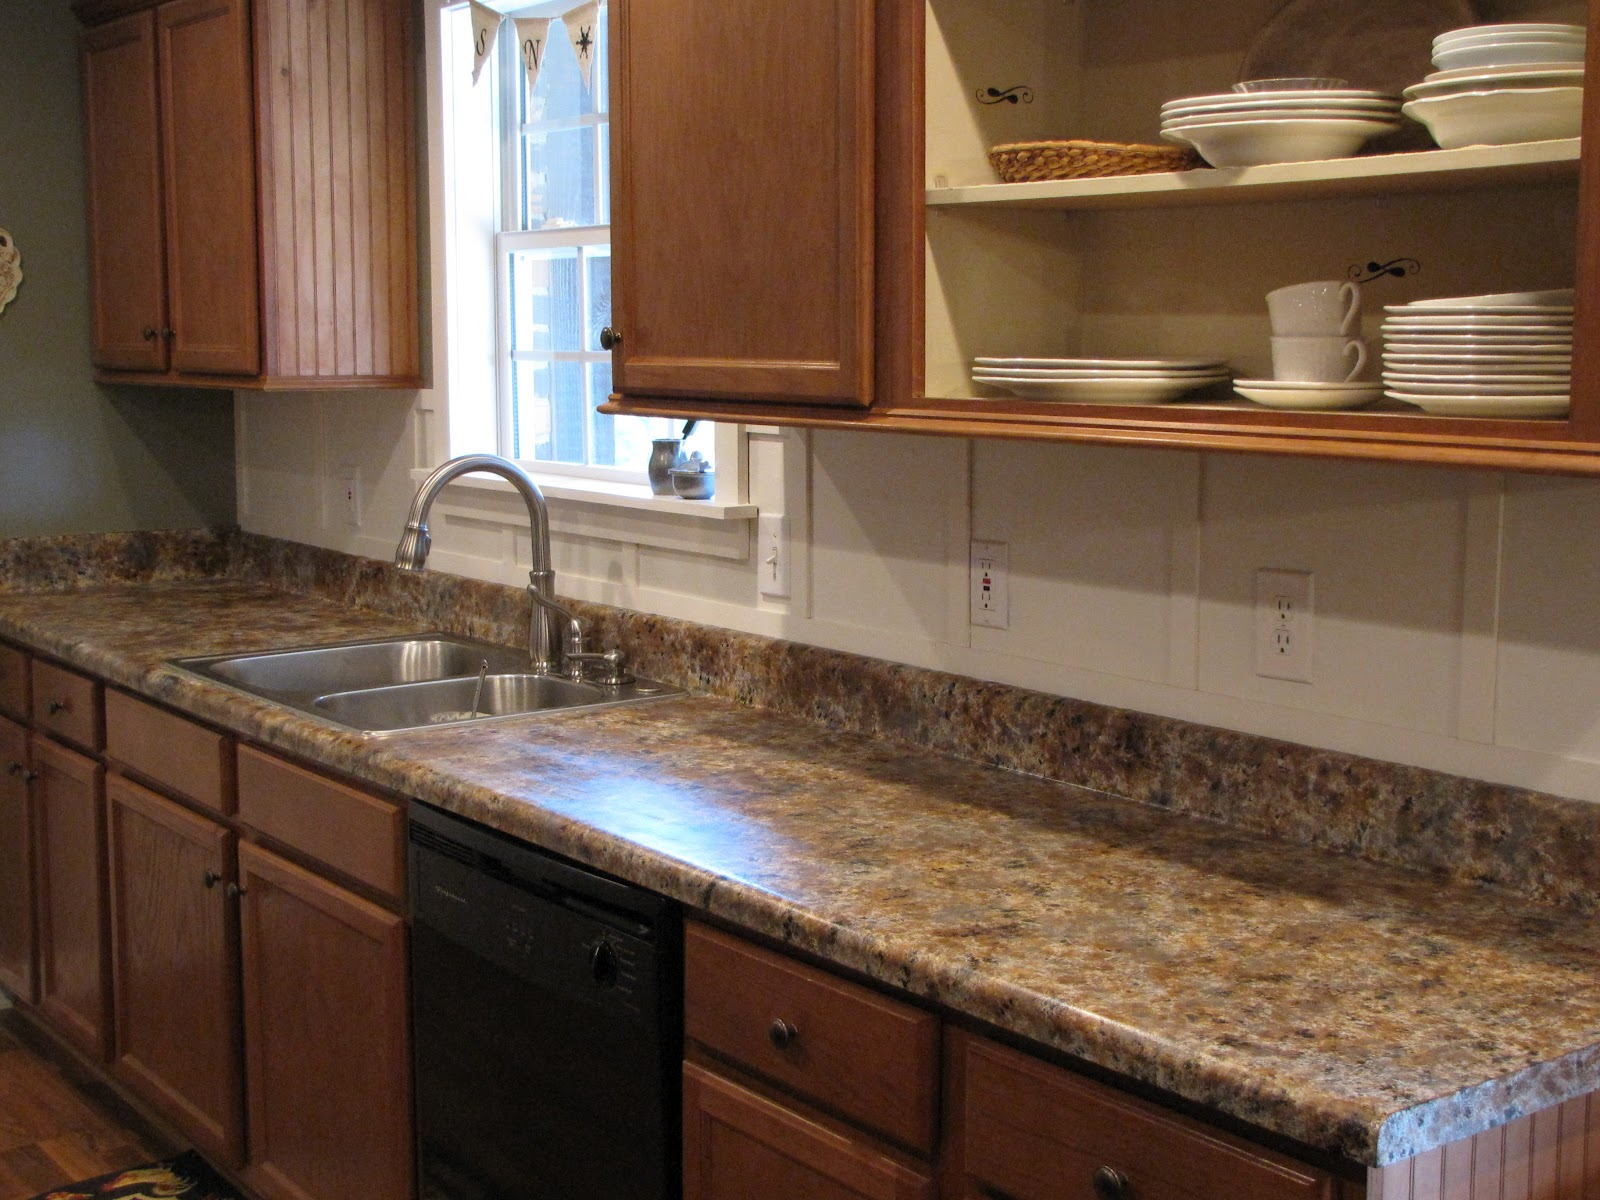 Painting laminate countertops in the kitchen - Kitchen countertops design ...